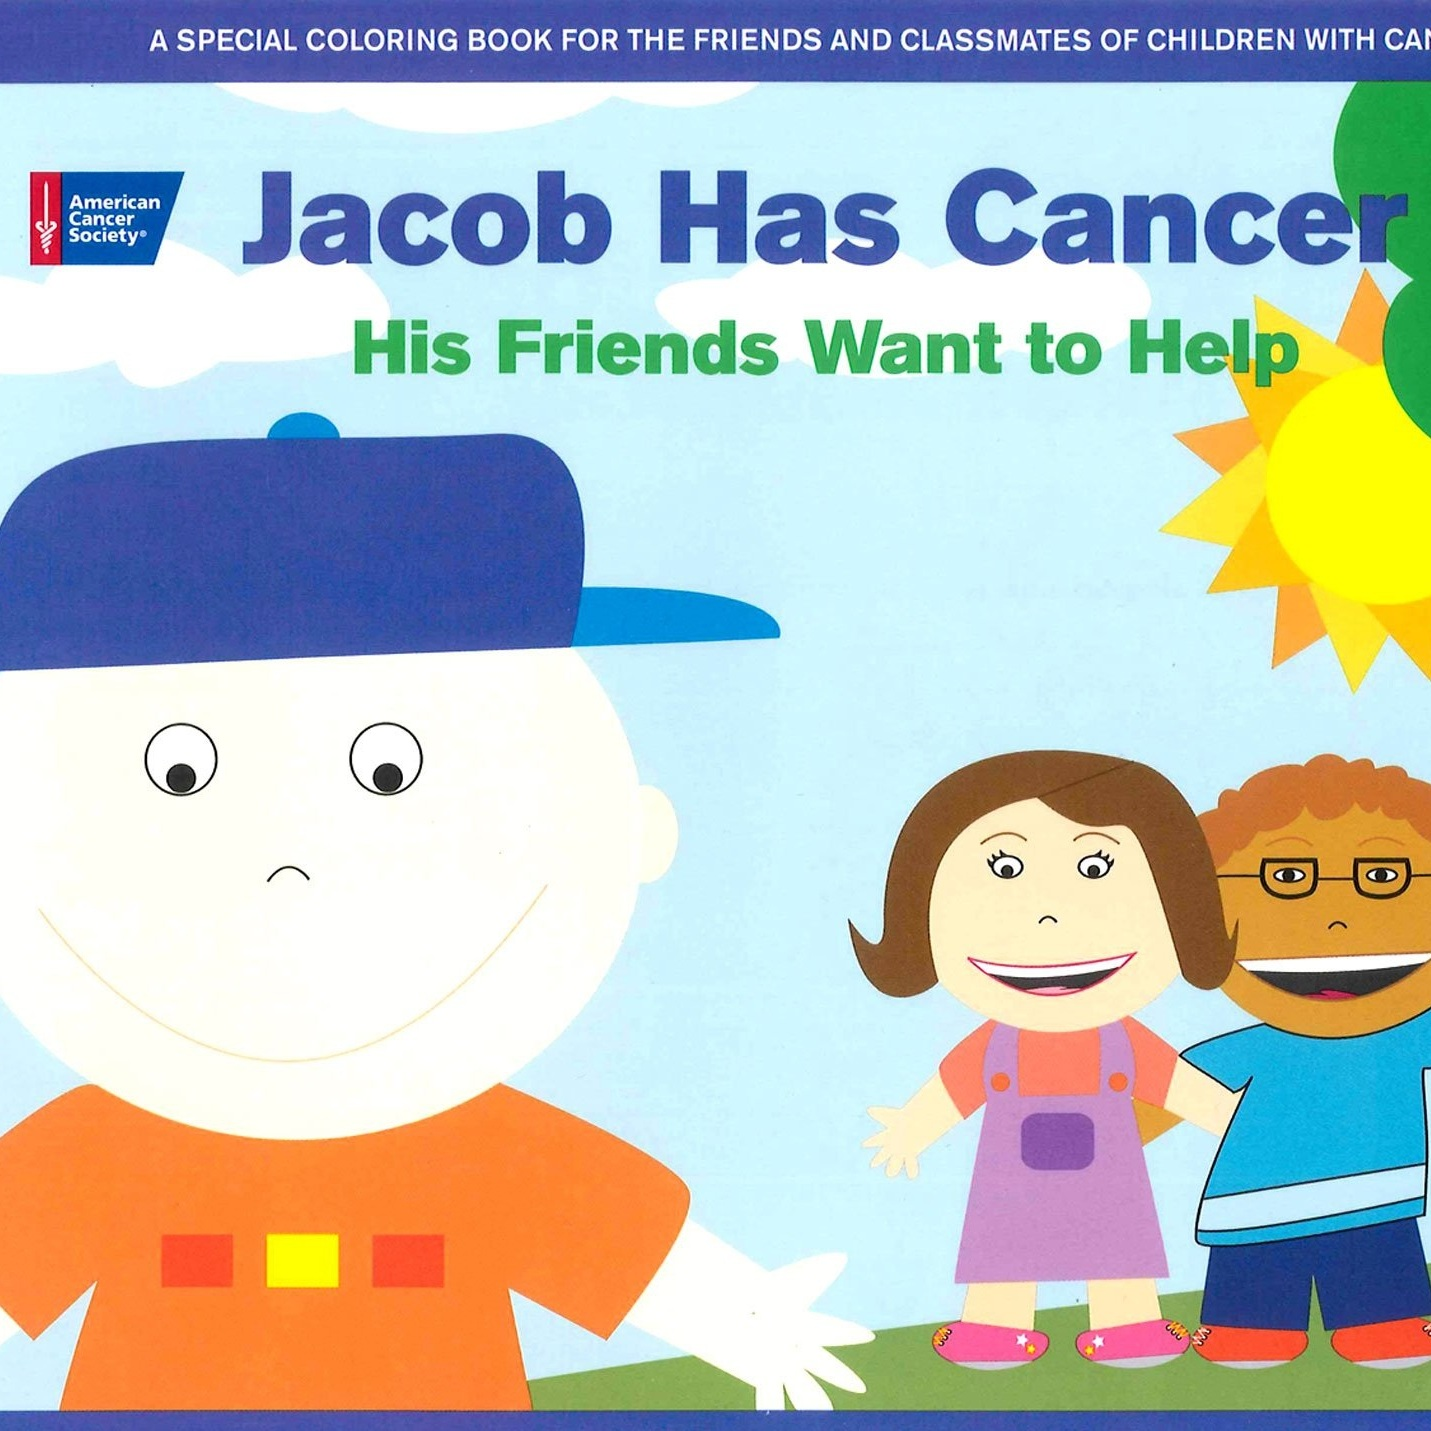 jacob has cancer: his friends want to help coloring book - Winner: 2010 Mom's Choice Award, Gold, Education Product; Finalist: 2009 USA Best Books Award. A special coloring book for the friends and classmates of children with cancer. As you color, you'll learn what cancer is, what your friend is going through, how you can help, and how much your help means to your friend.